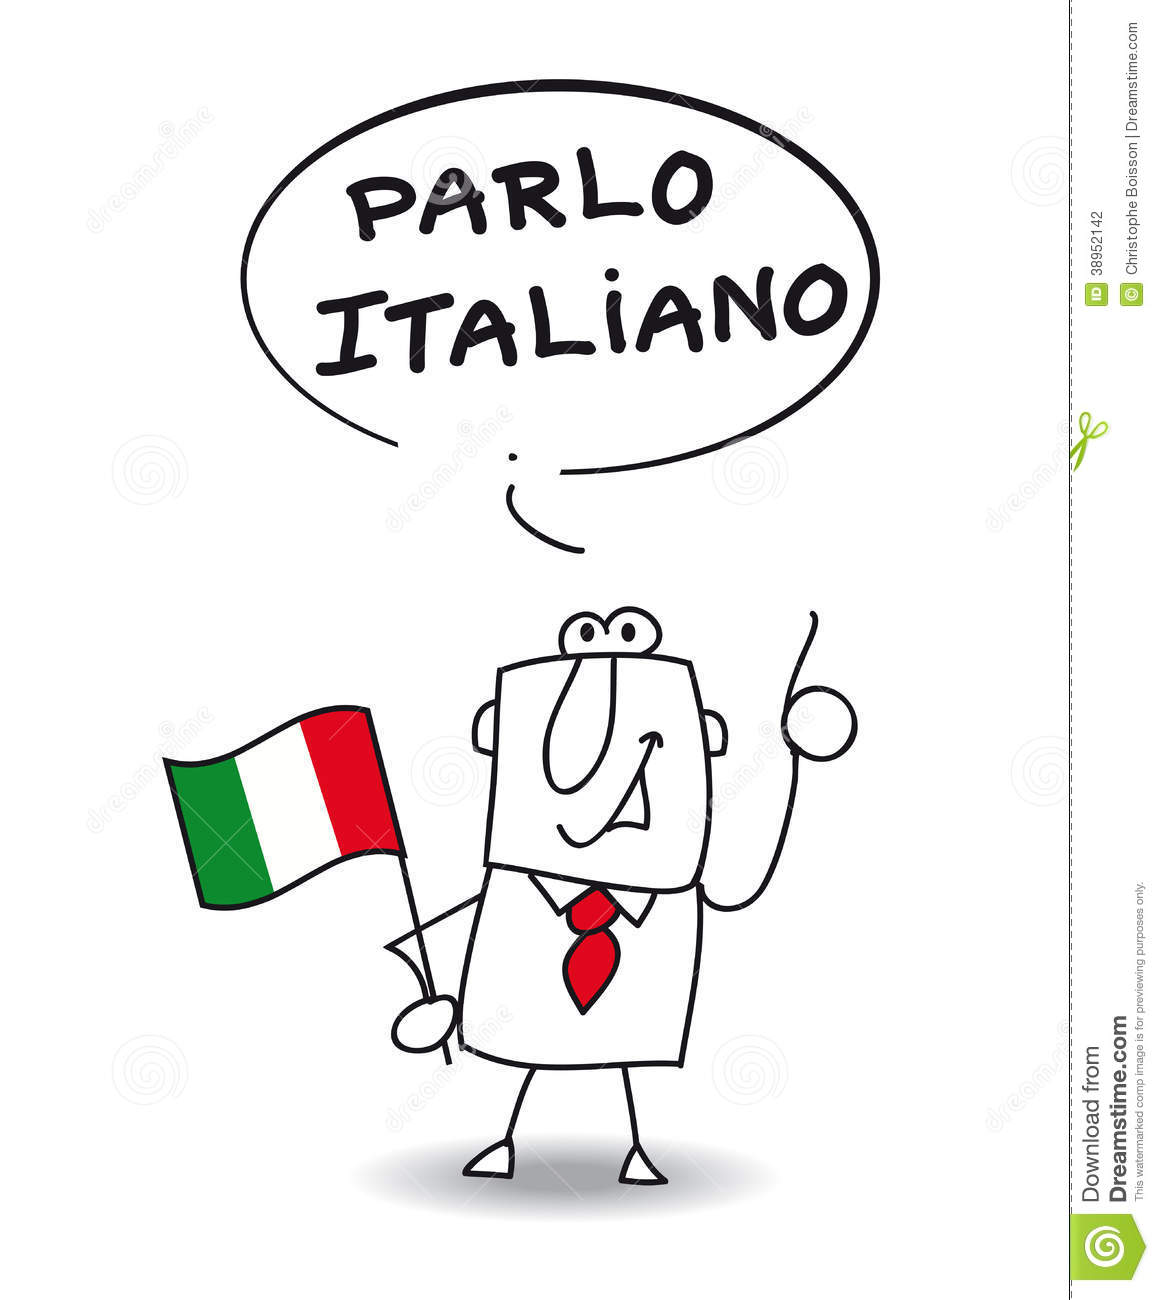 Speak Italian Stock Illustration - Image: 38952142